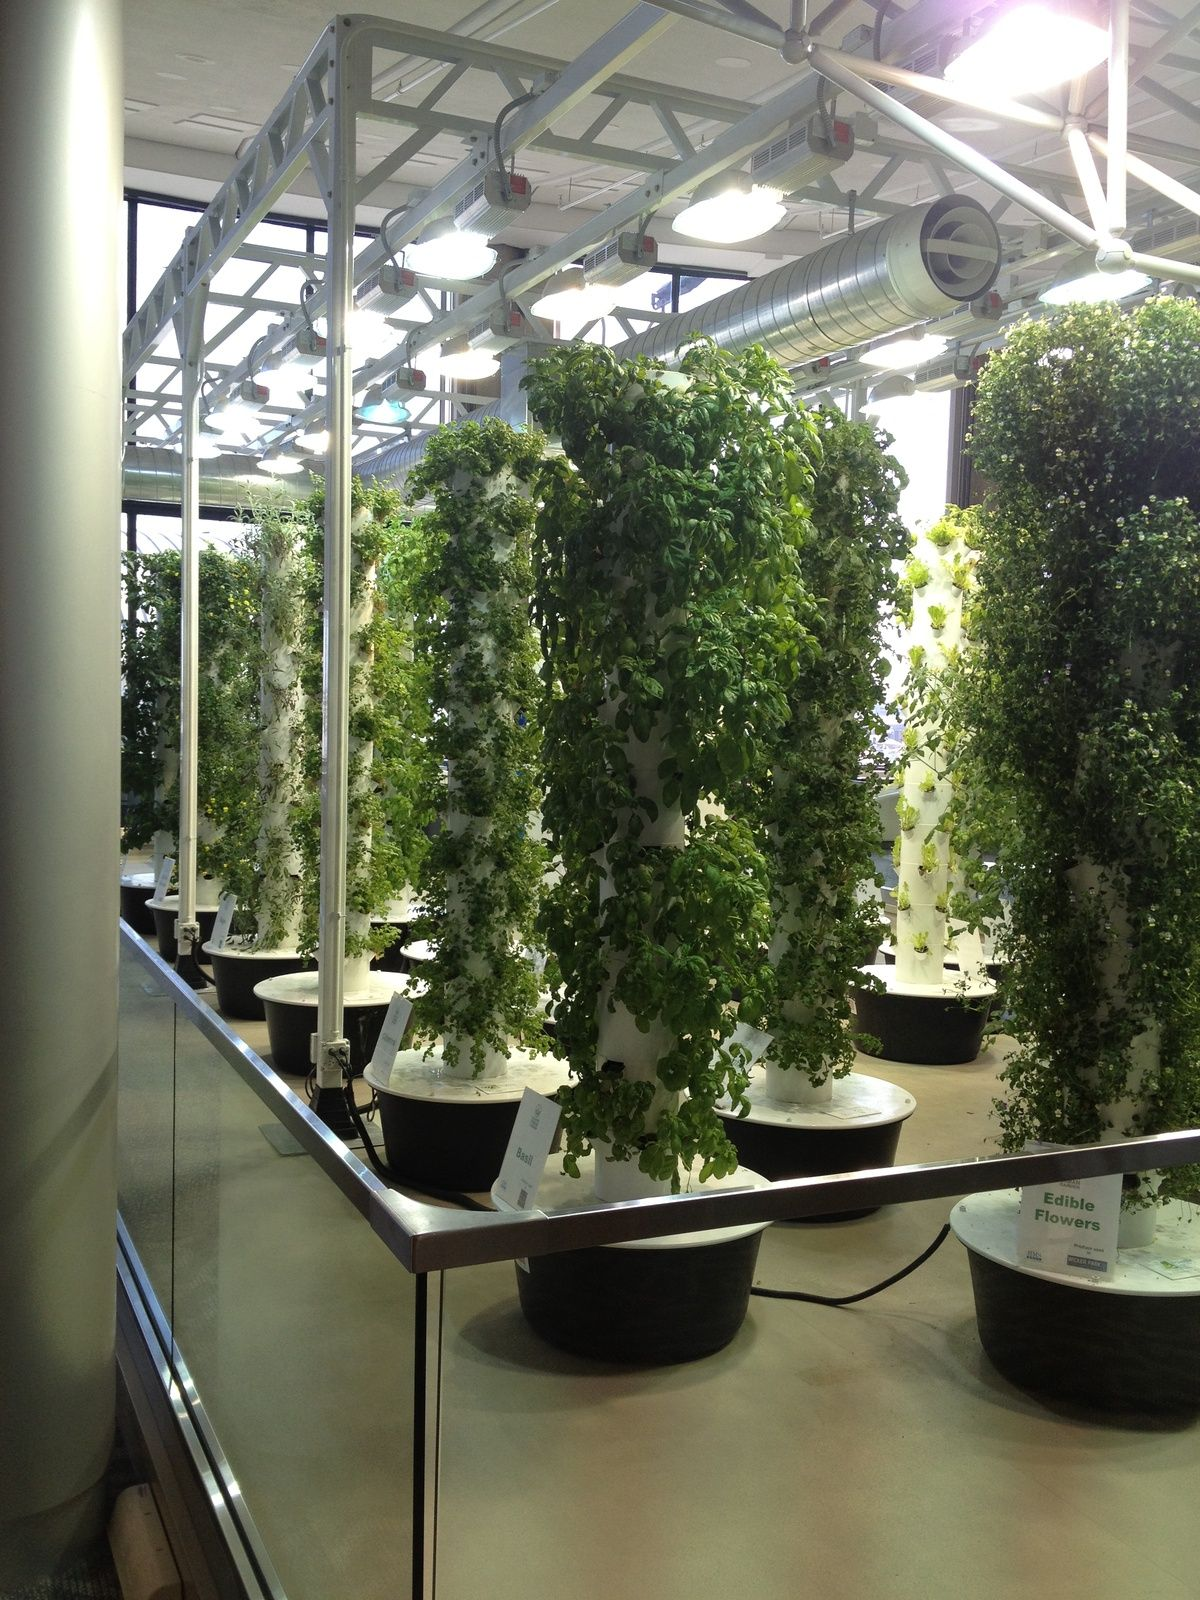 Hydroponic Garden In The Chicago Airport